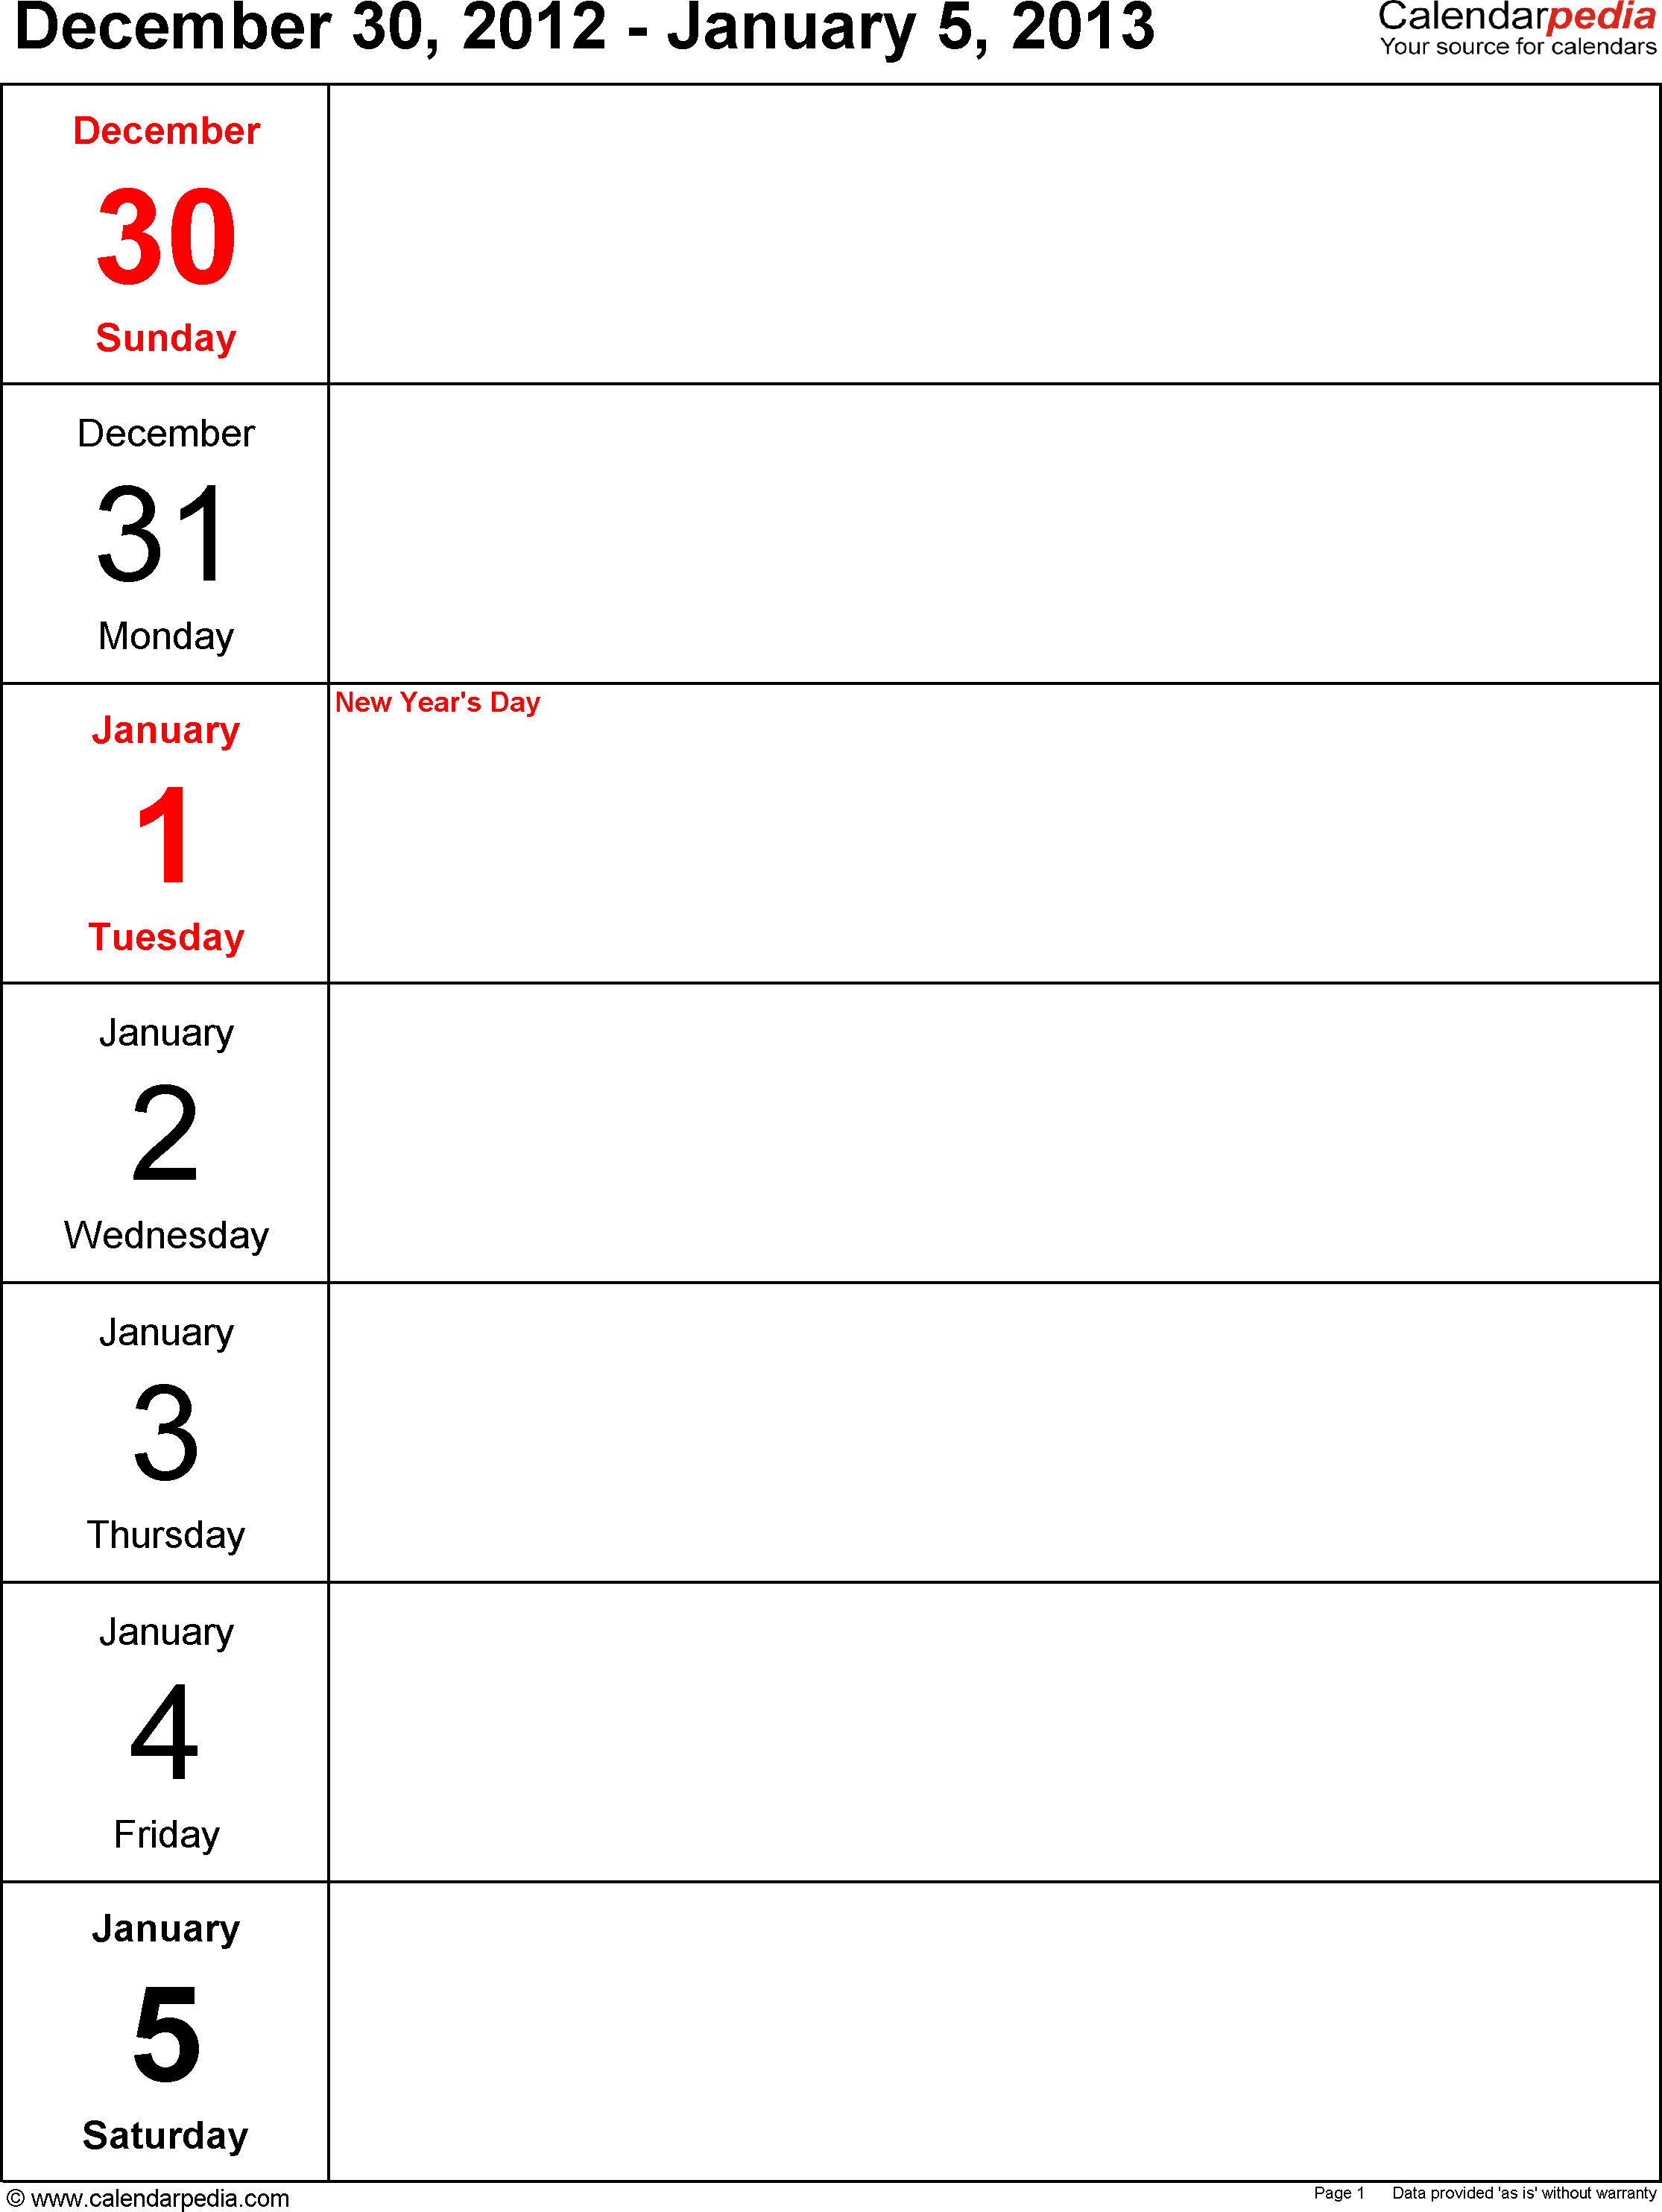 Weekly calendar 2013: template for PDF version 4, portrait, 53 pages, days vertically, great for a weekly diary